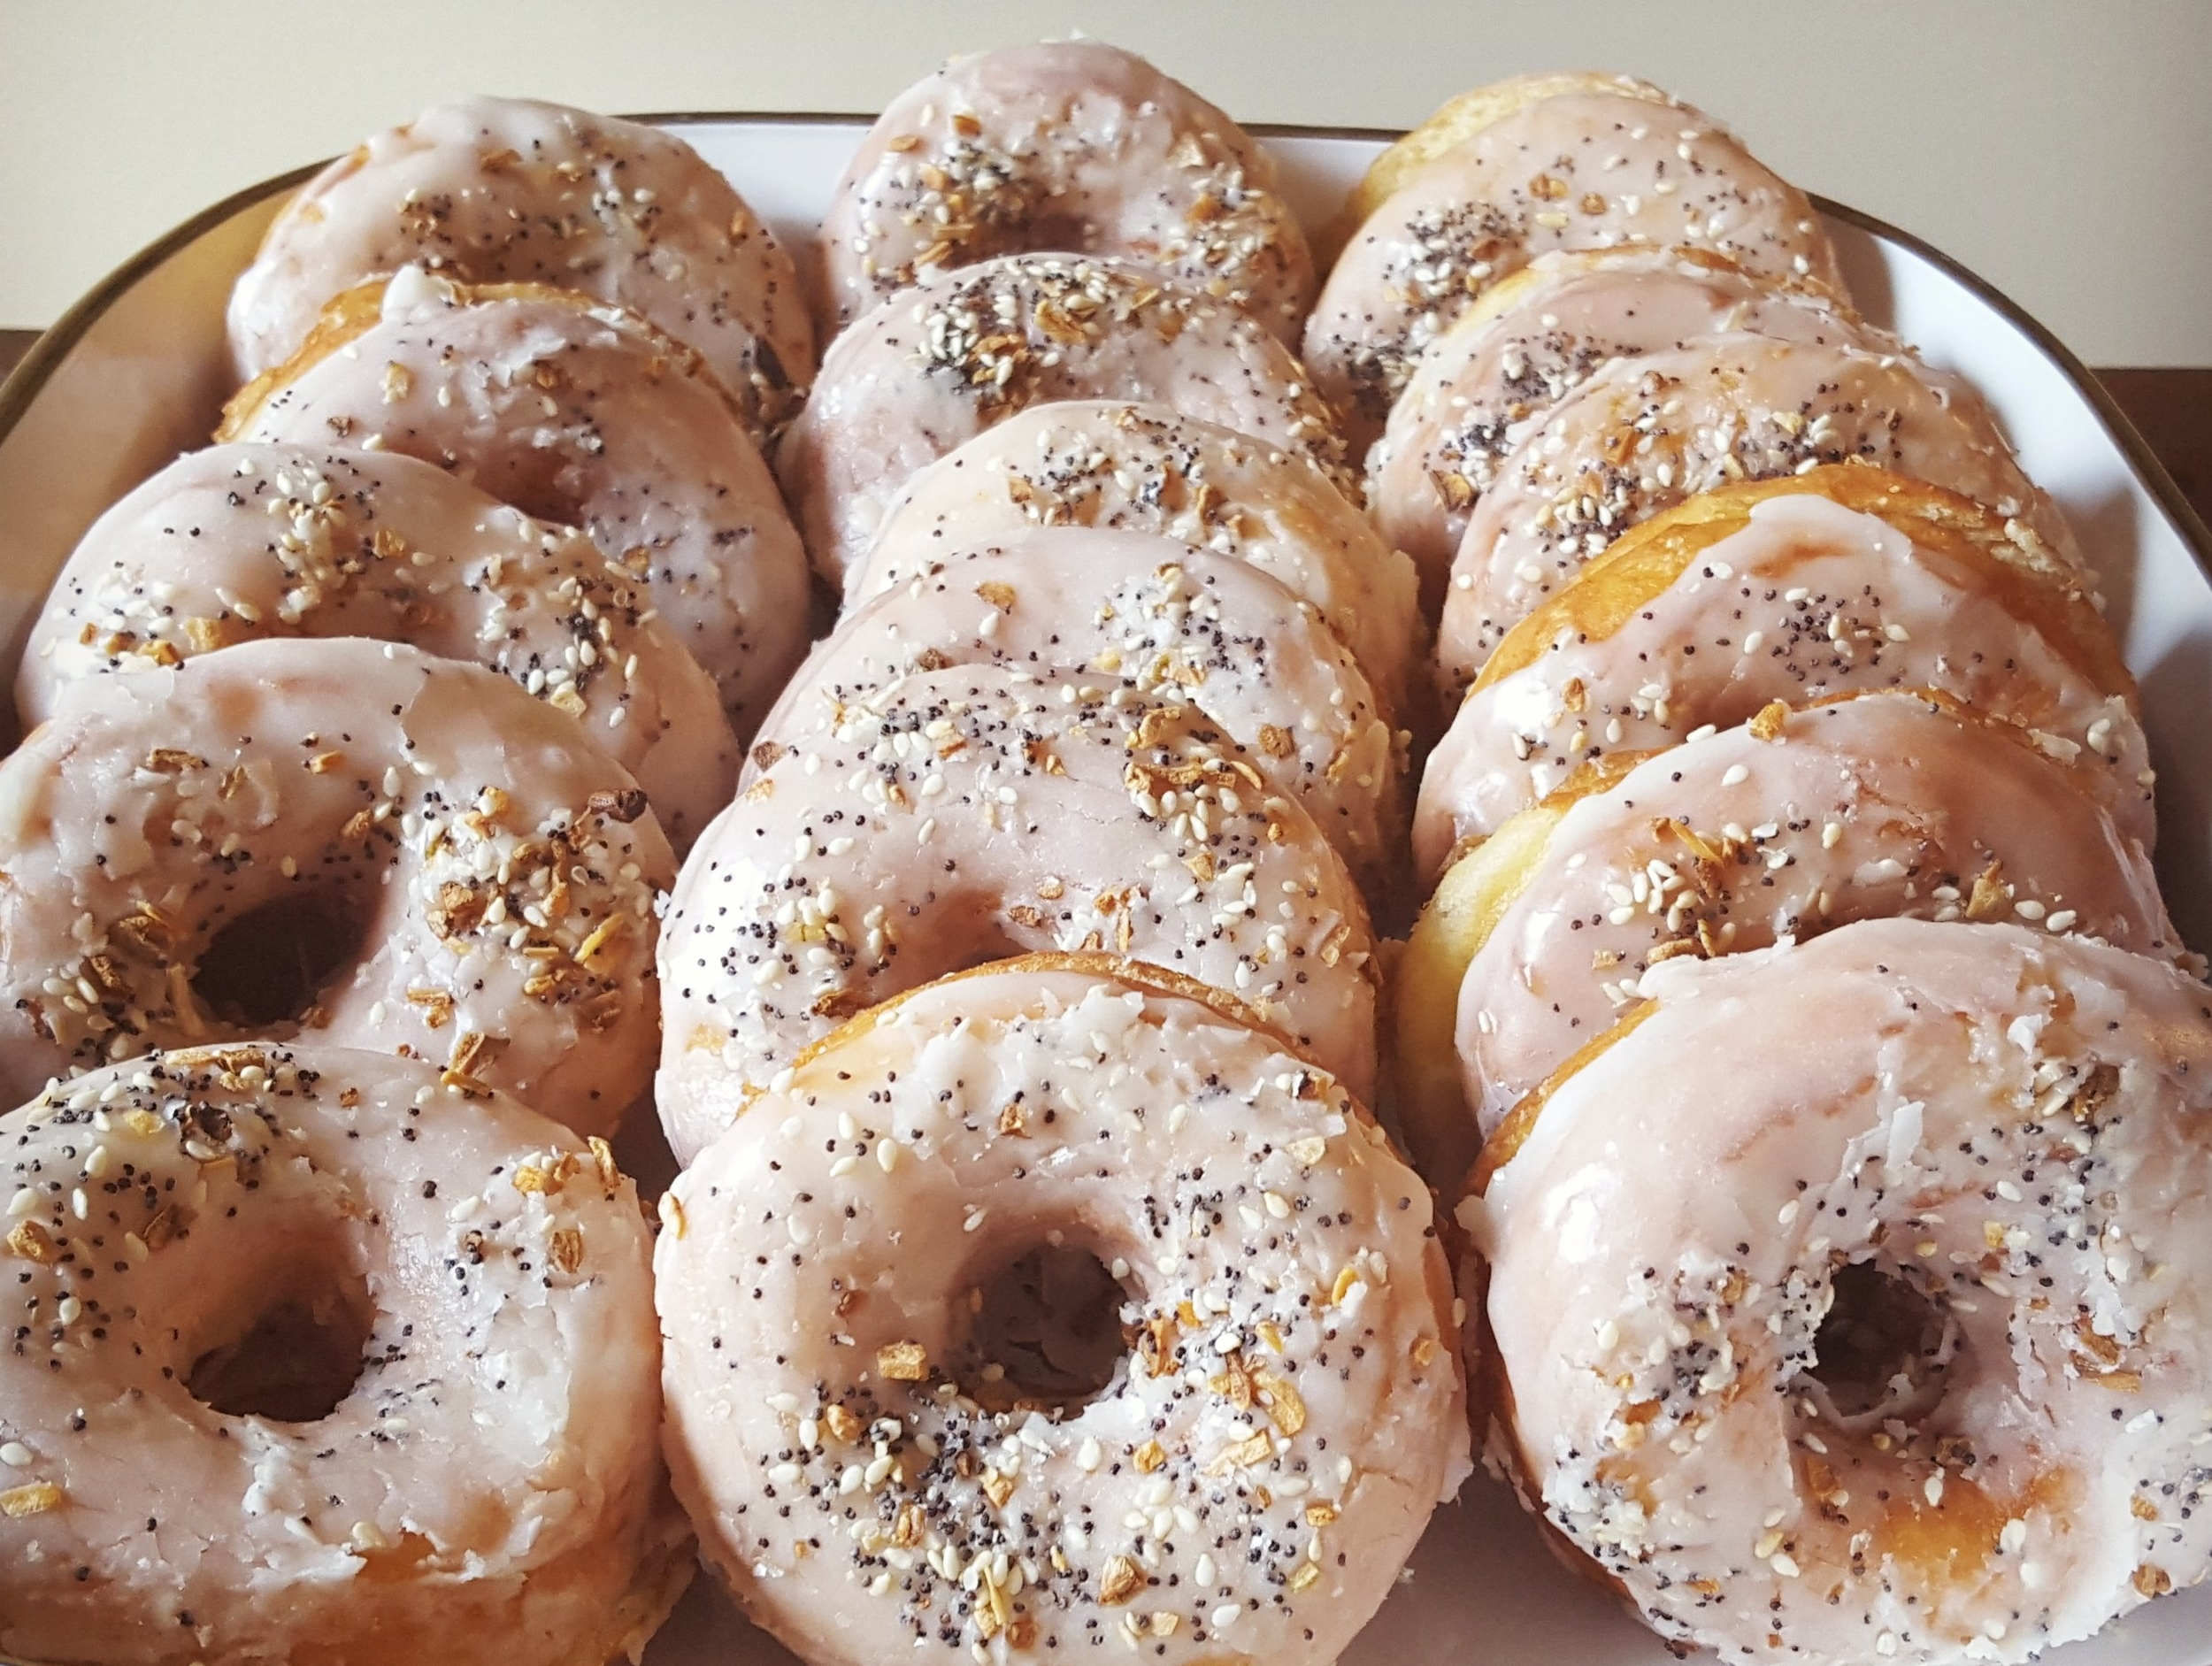 Rows of vanilla glazed doughnuts topped with poppyseeds and more